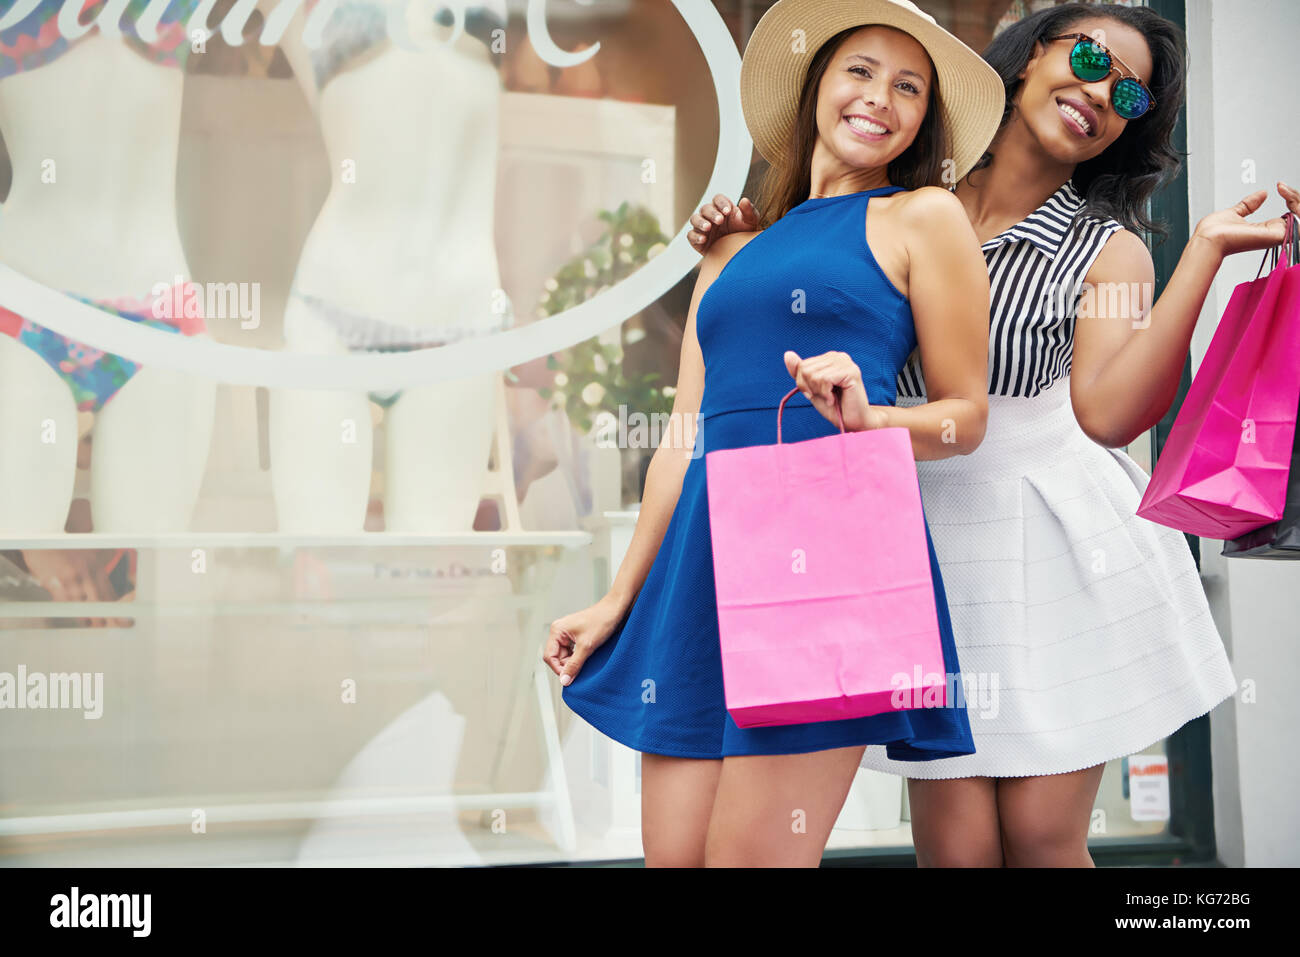 Pair of beautiful young adult women in short skirts holding pink shopping bags with copy space - Stock Image